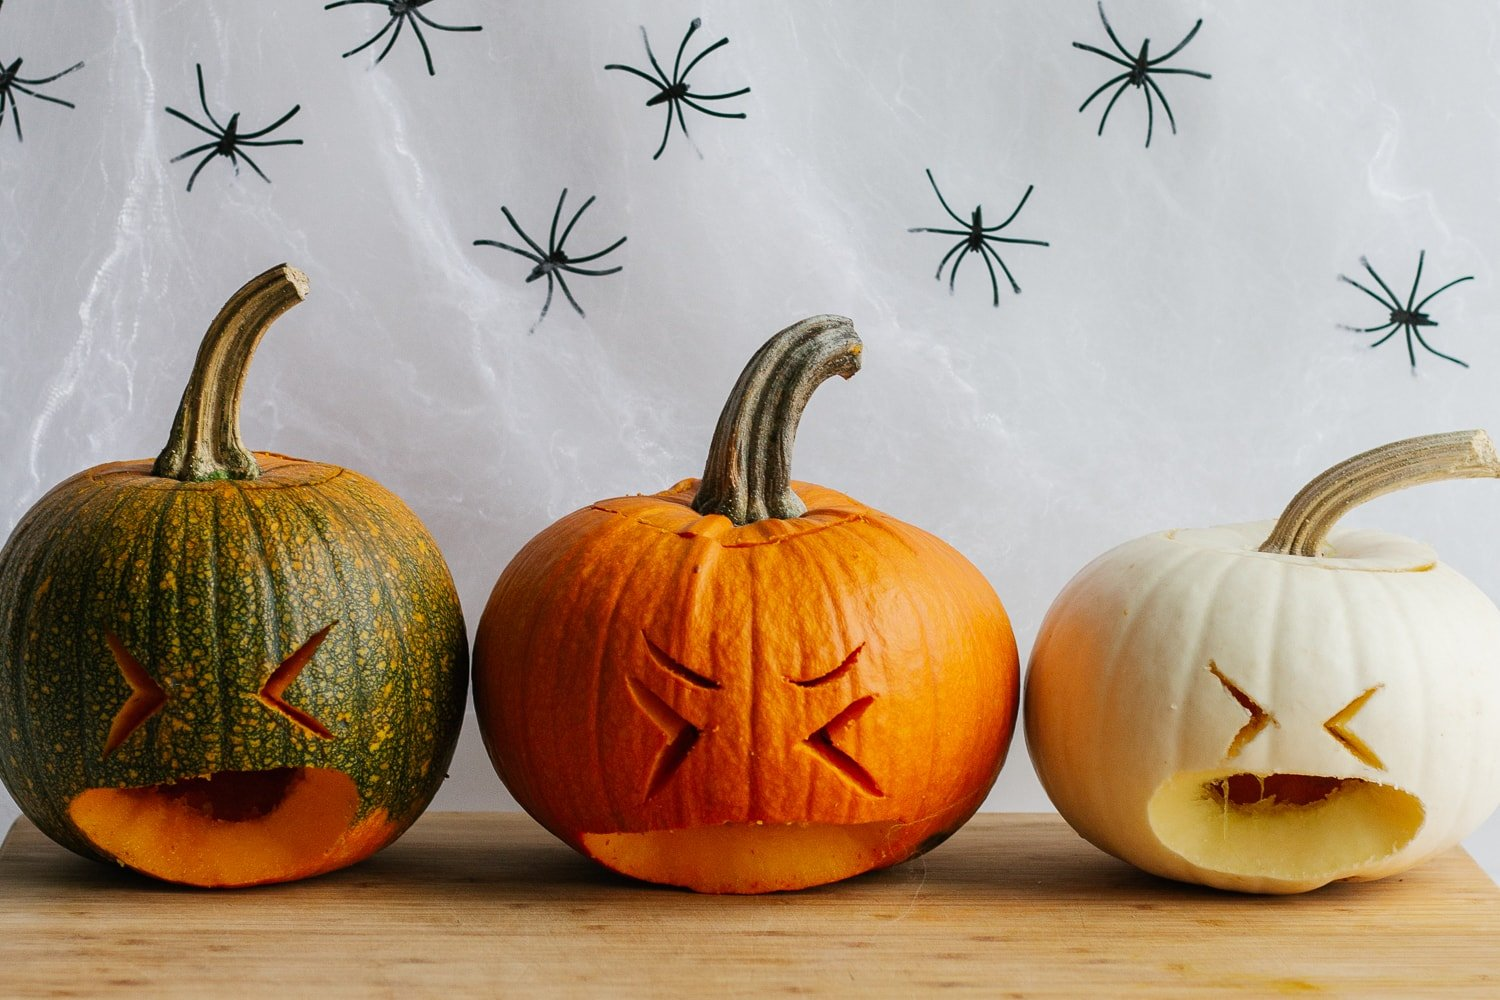 Three small carved pumpkins sitting on a wooden board.